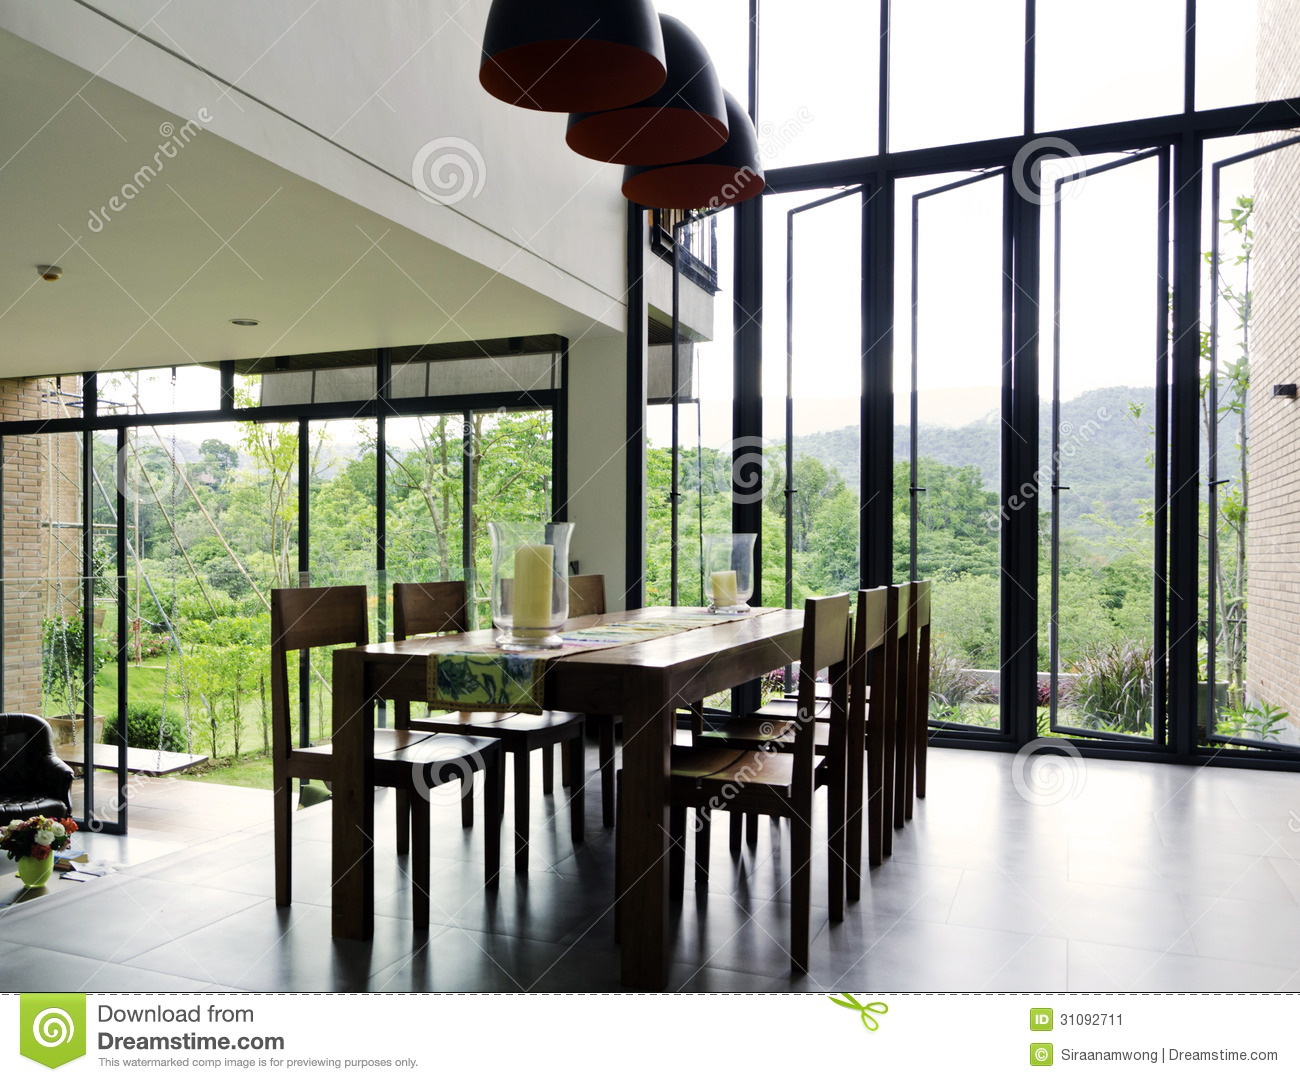 Download Dining Room Interior With Wooden Table And Chairs Stock Image - Image of brown, living: 31092711